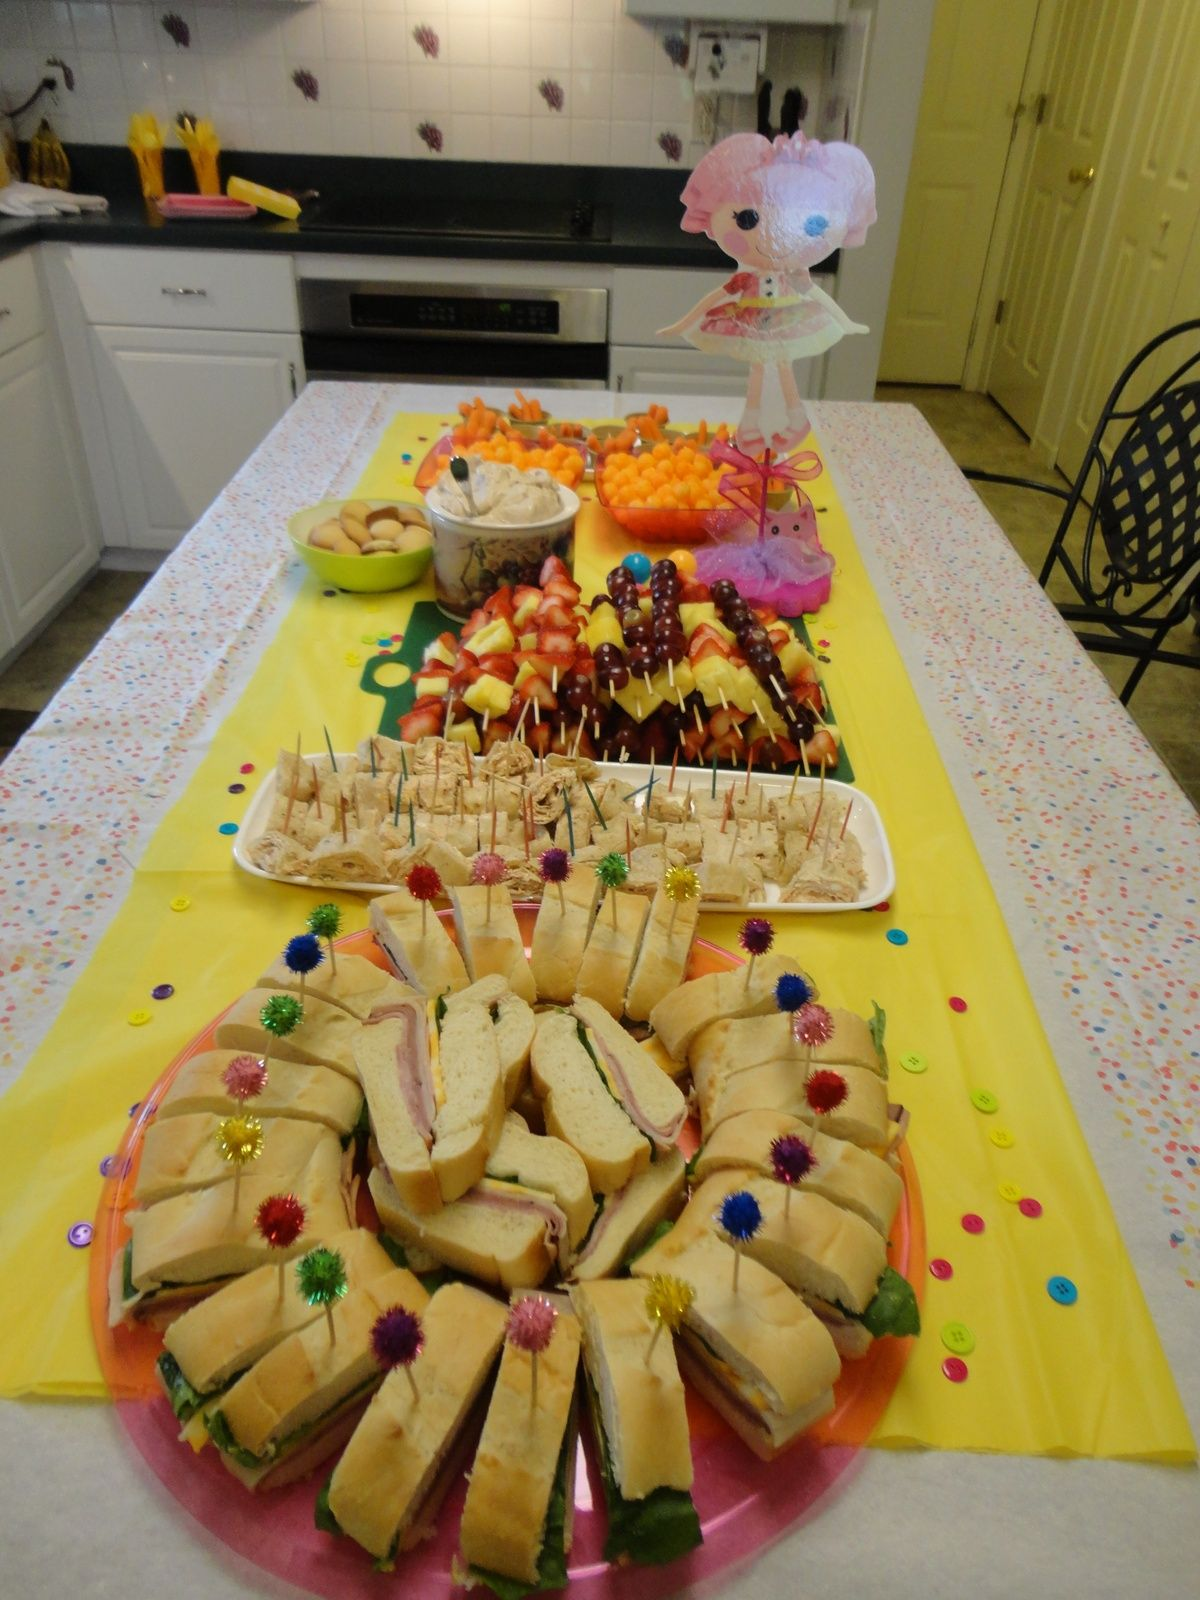 Pin by Cindy on Party food ideas Lalaloopsy party